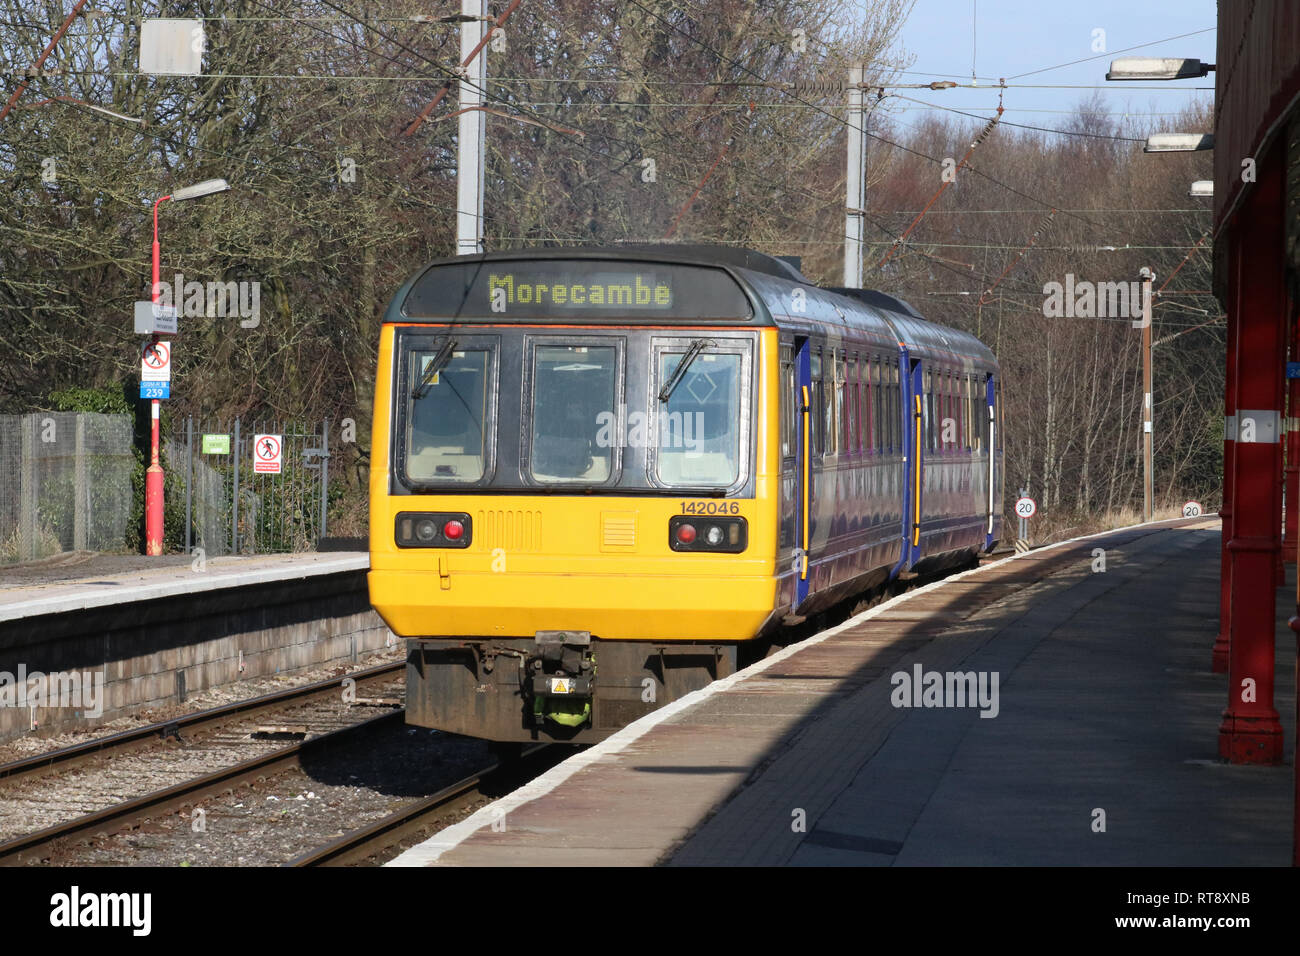 Class 142 Pacer diesel multiple unit, number 142 046, in Northern livery leaving at Lancaster railway station, platform 2, on 25th February 2019. - Stock Image